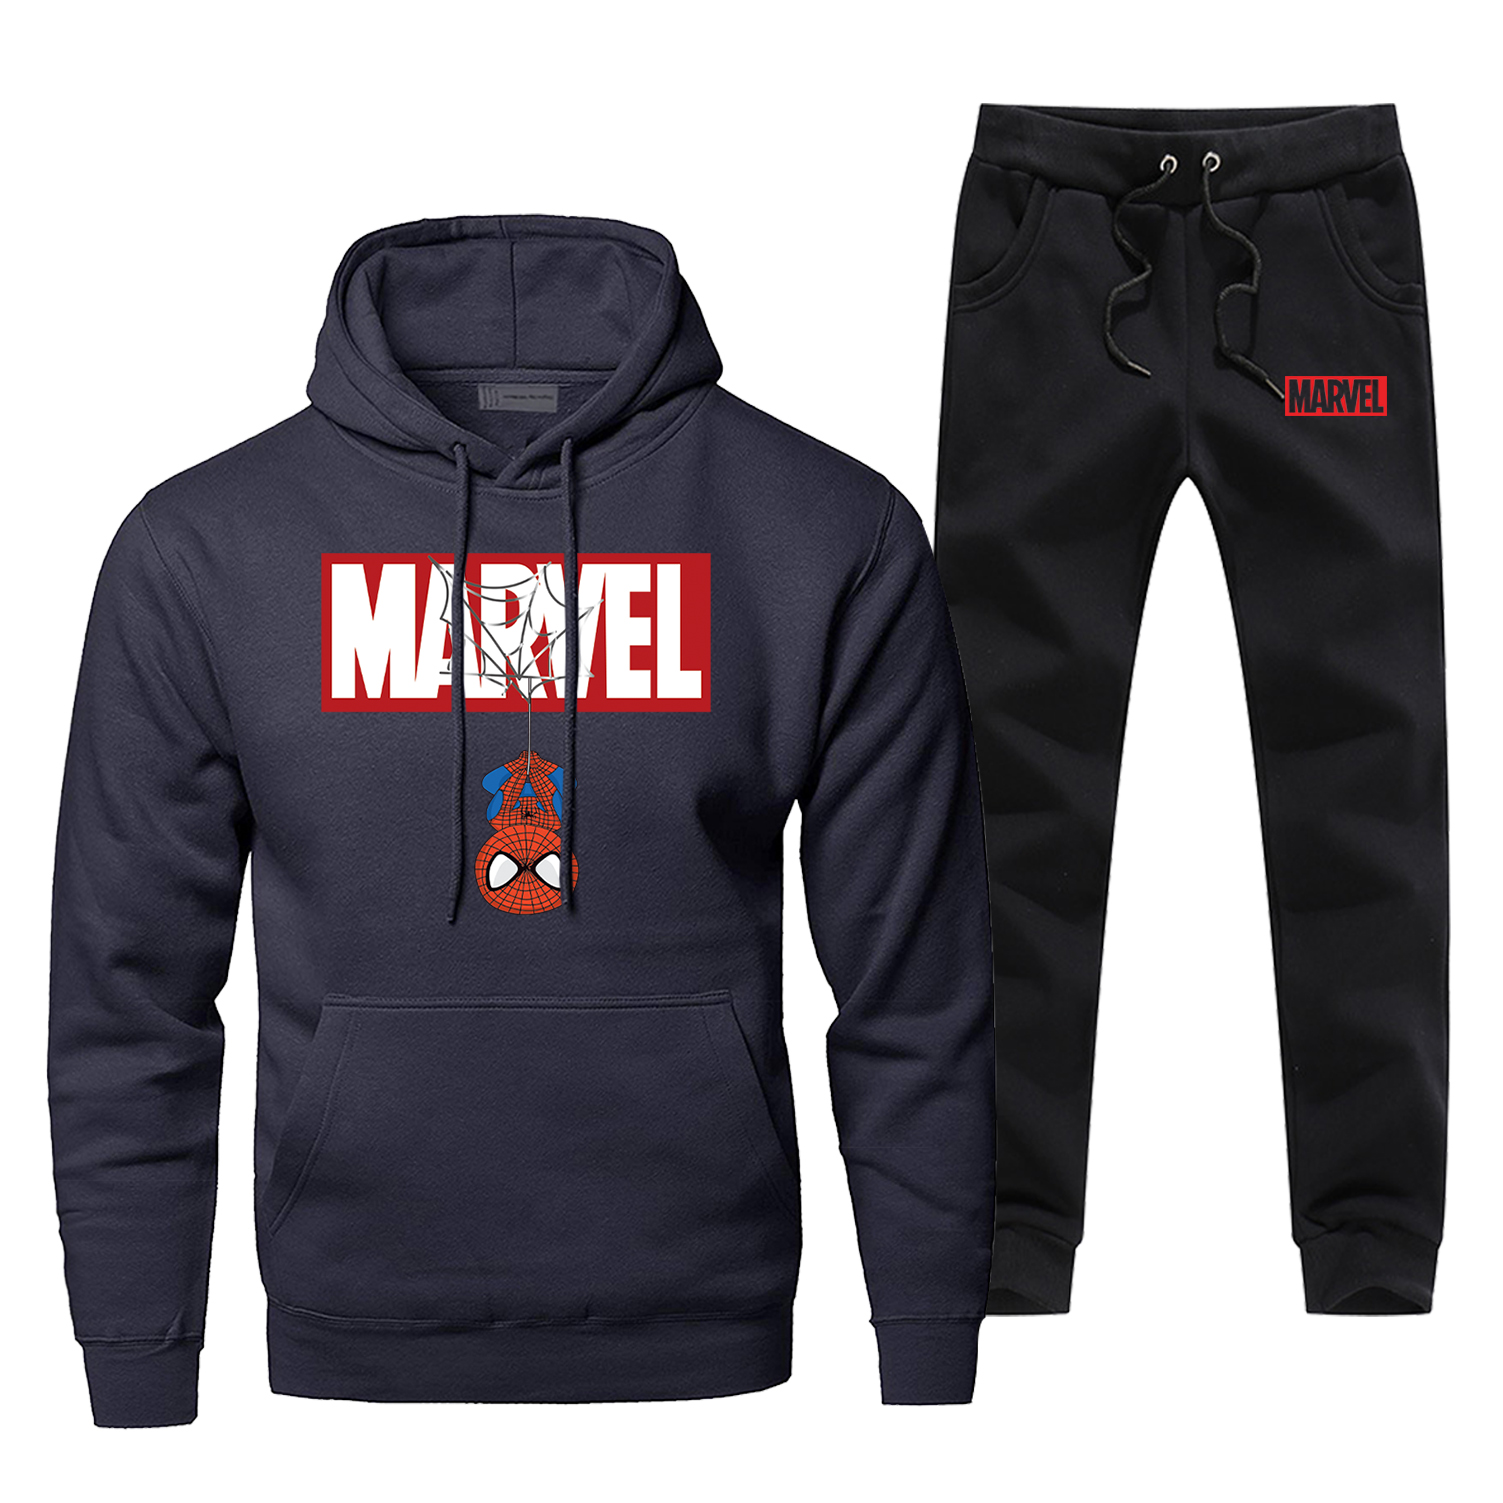 Spider Man Hoodies Pants Set Men Marvel Hoodie Sweatshirt Men Superhero Hoodies Pollover 2 Pcs Streetwear Male Funny Sweatshirts